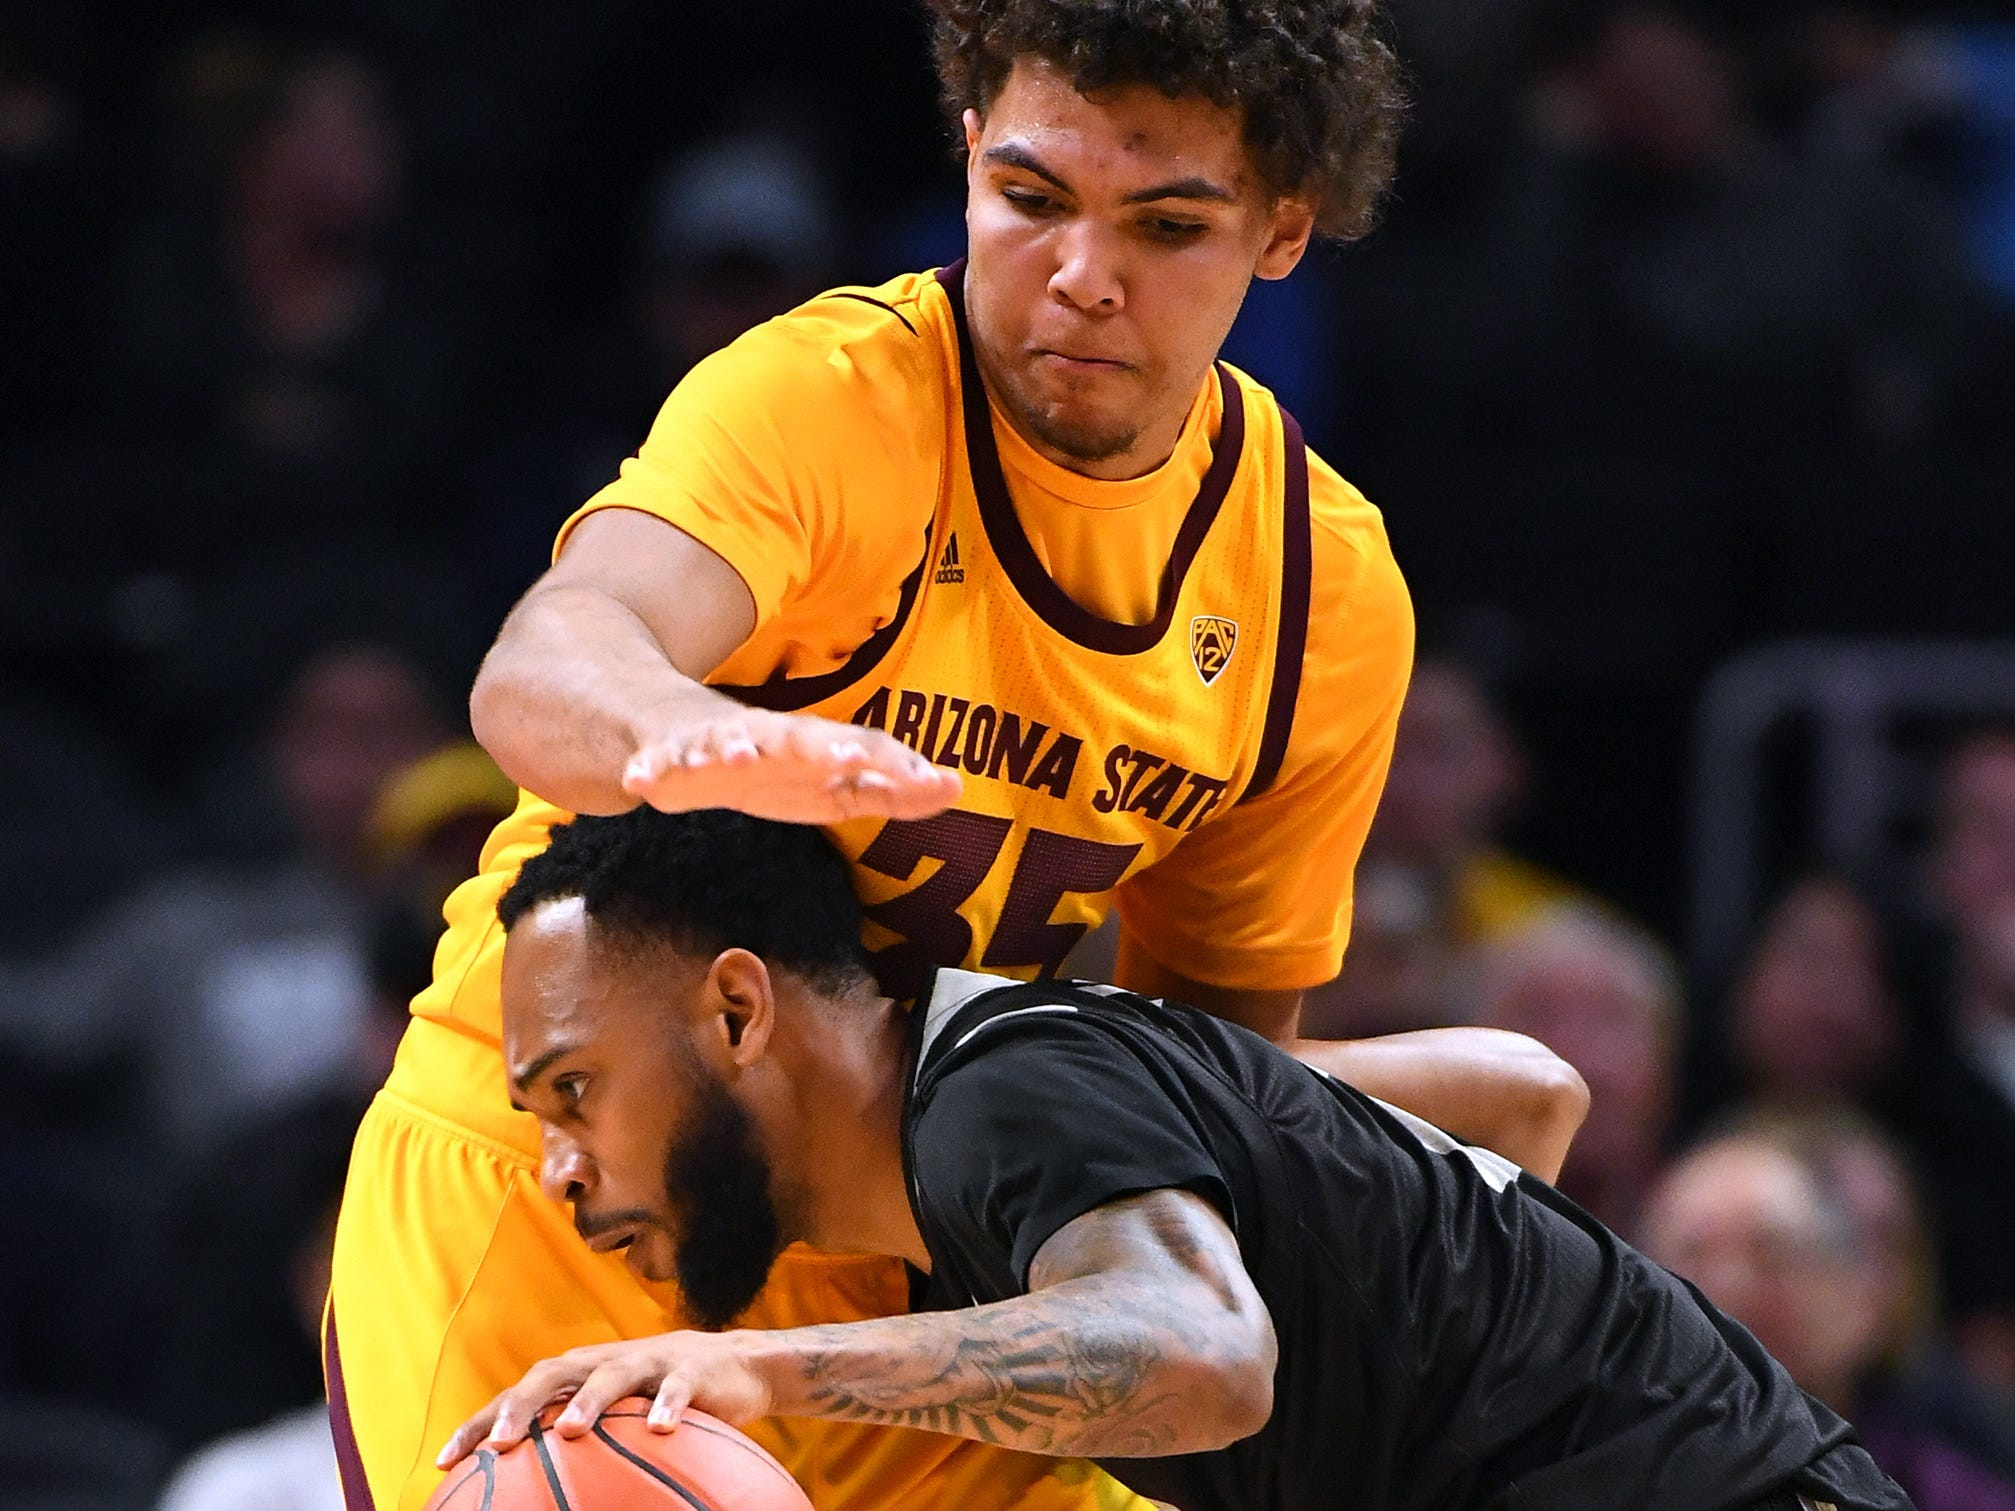 Dec 7, 2018; Los Angeles, CA, USA;  Arizona State Sun Devils forward Taeshon Cherry (35) guards Nevada Wolf Pack guard Corey Henson (2) in the first half of the game at Staples Center. Mandatory Credit: Jayne Kamin-Oncea-USA TODAY Sports